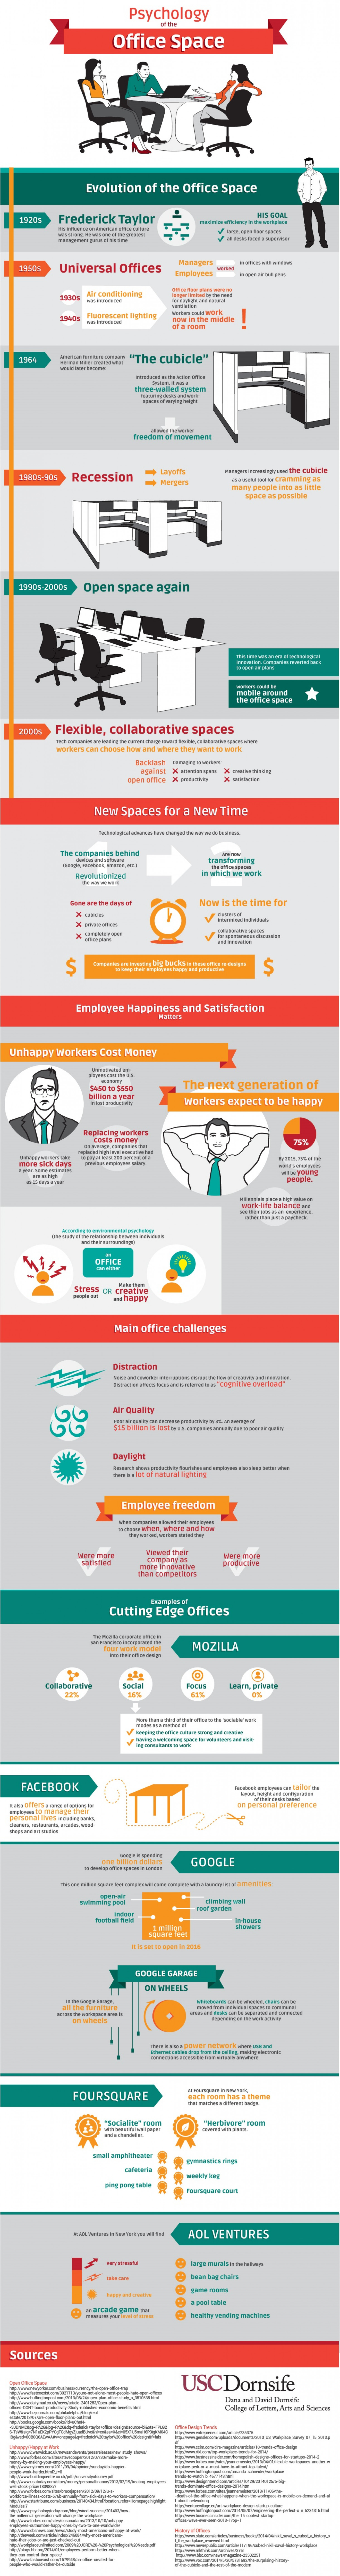 Psychology of the Office Space Infographic